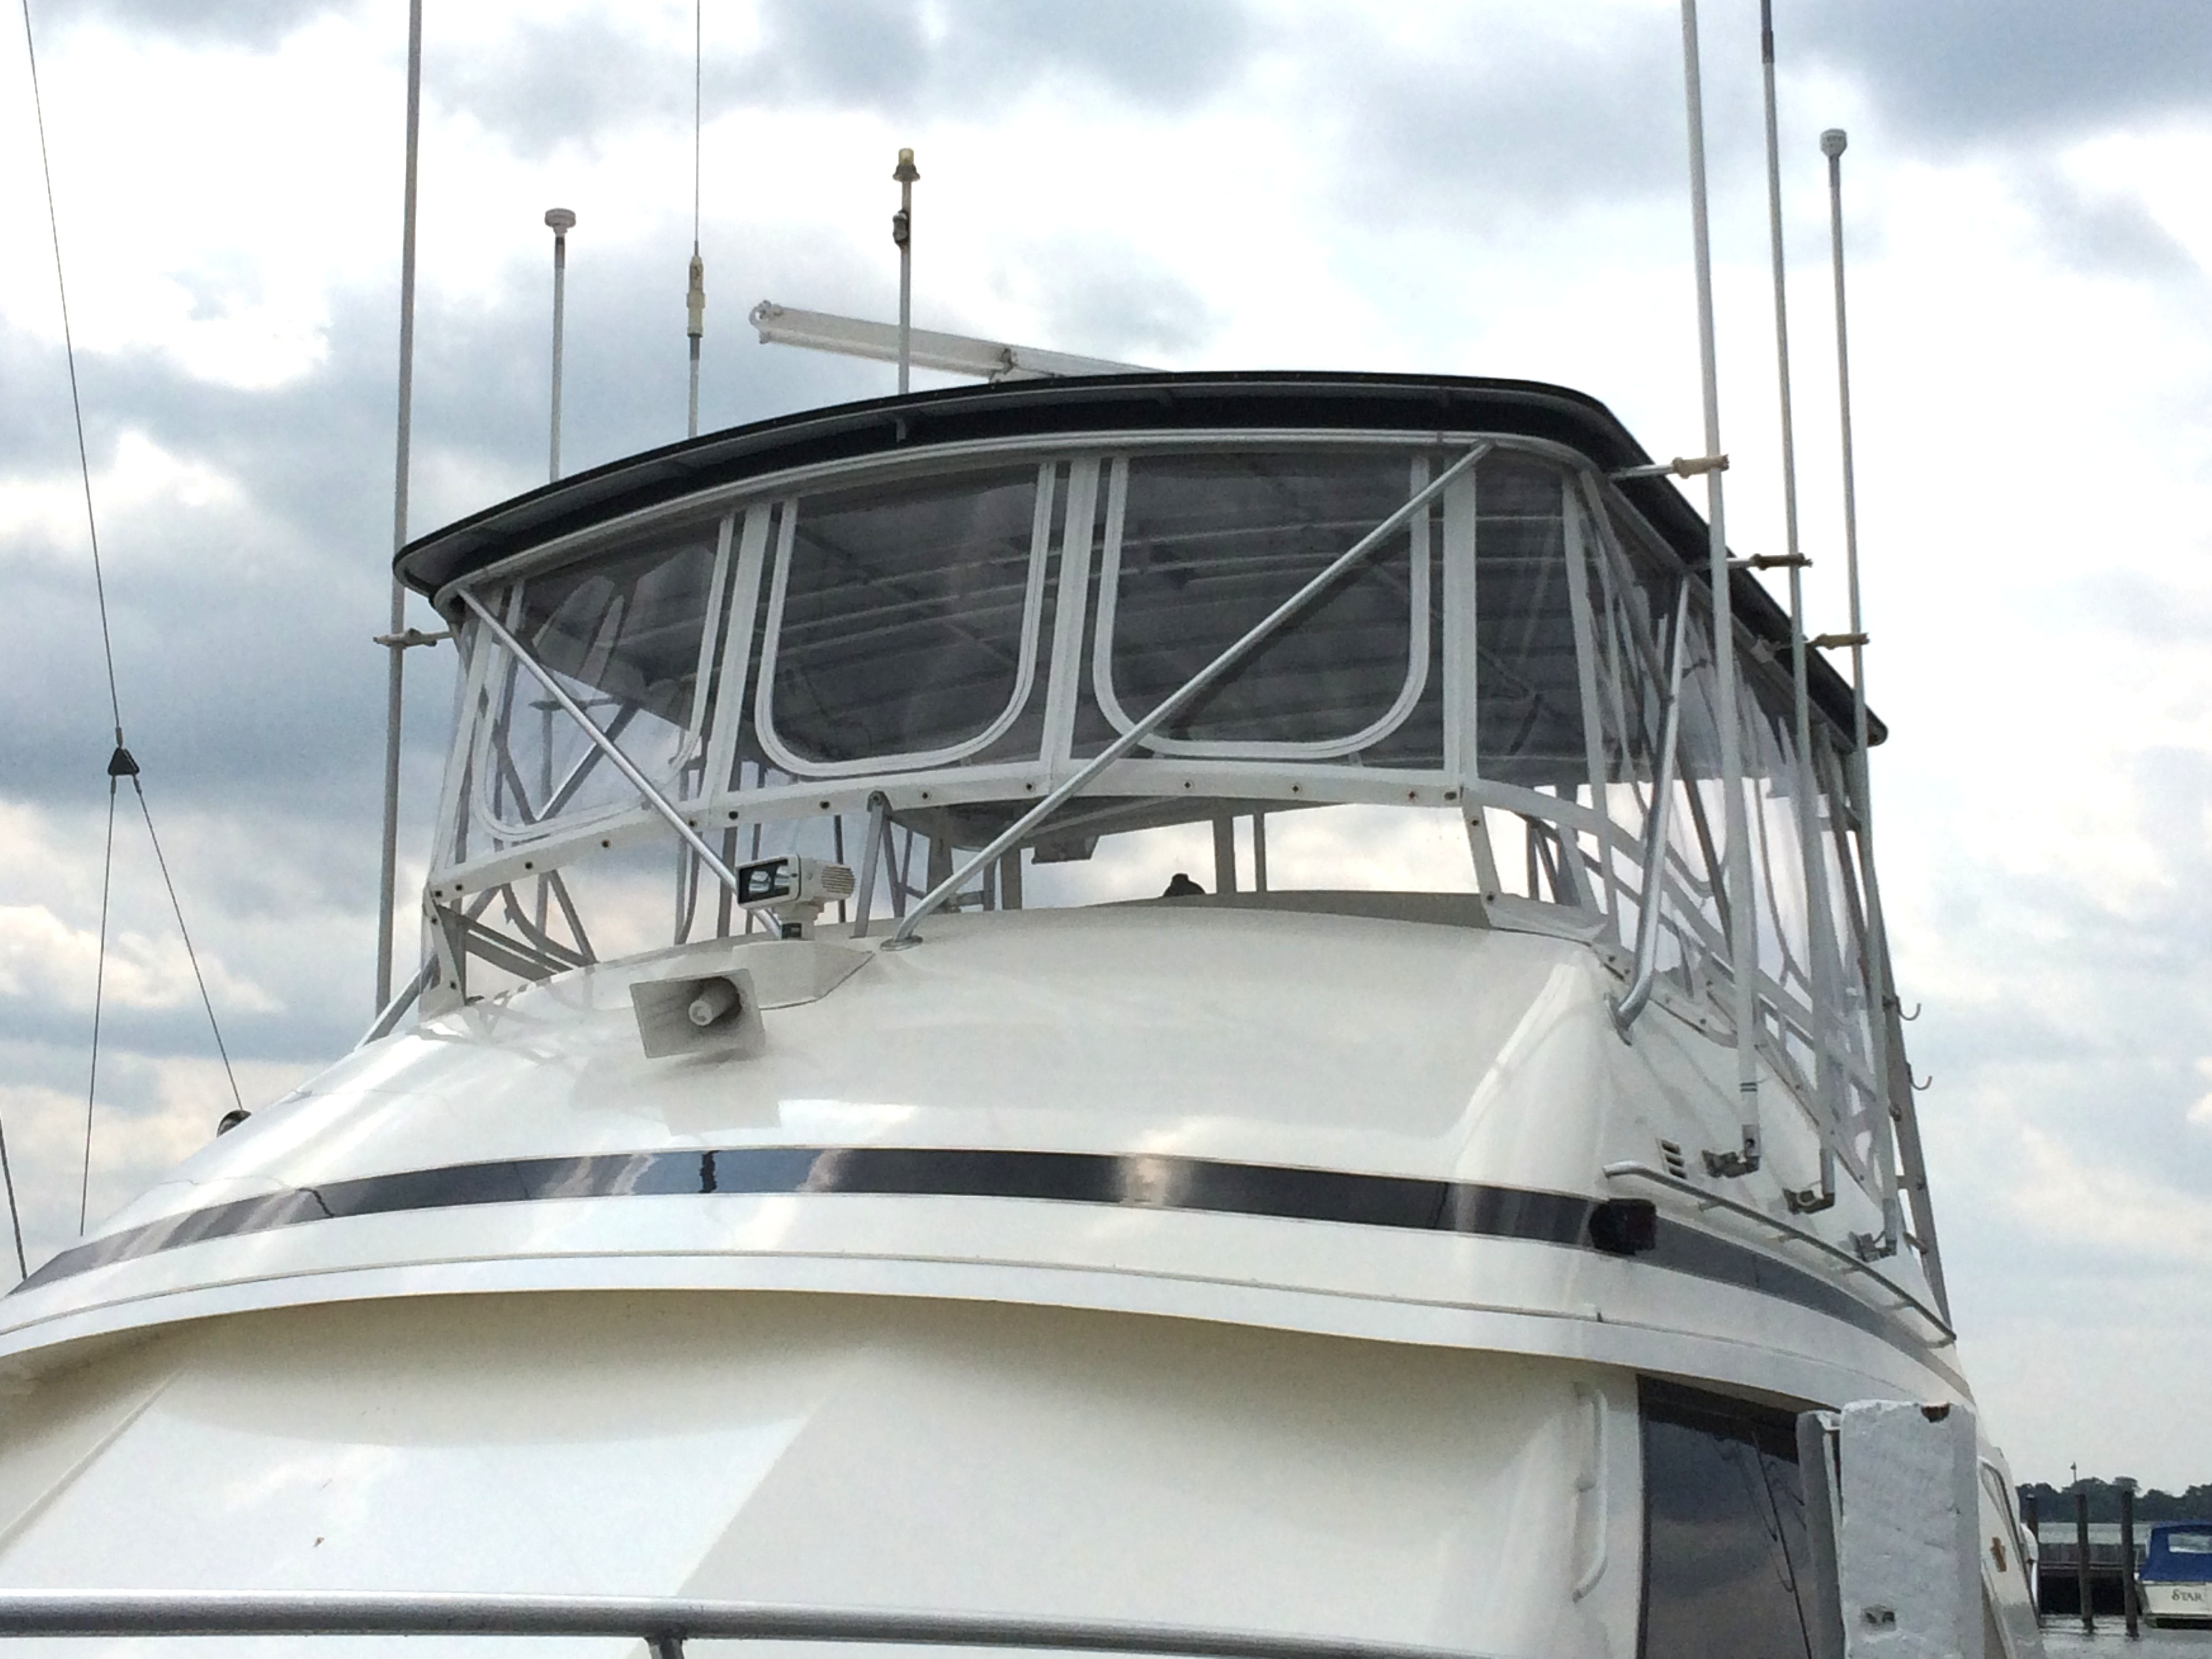 2015 Outstanding Achievement - Power Boats - Soft Enclosures (50' Bertram)